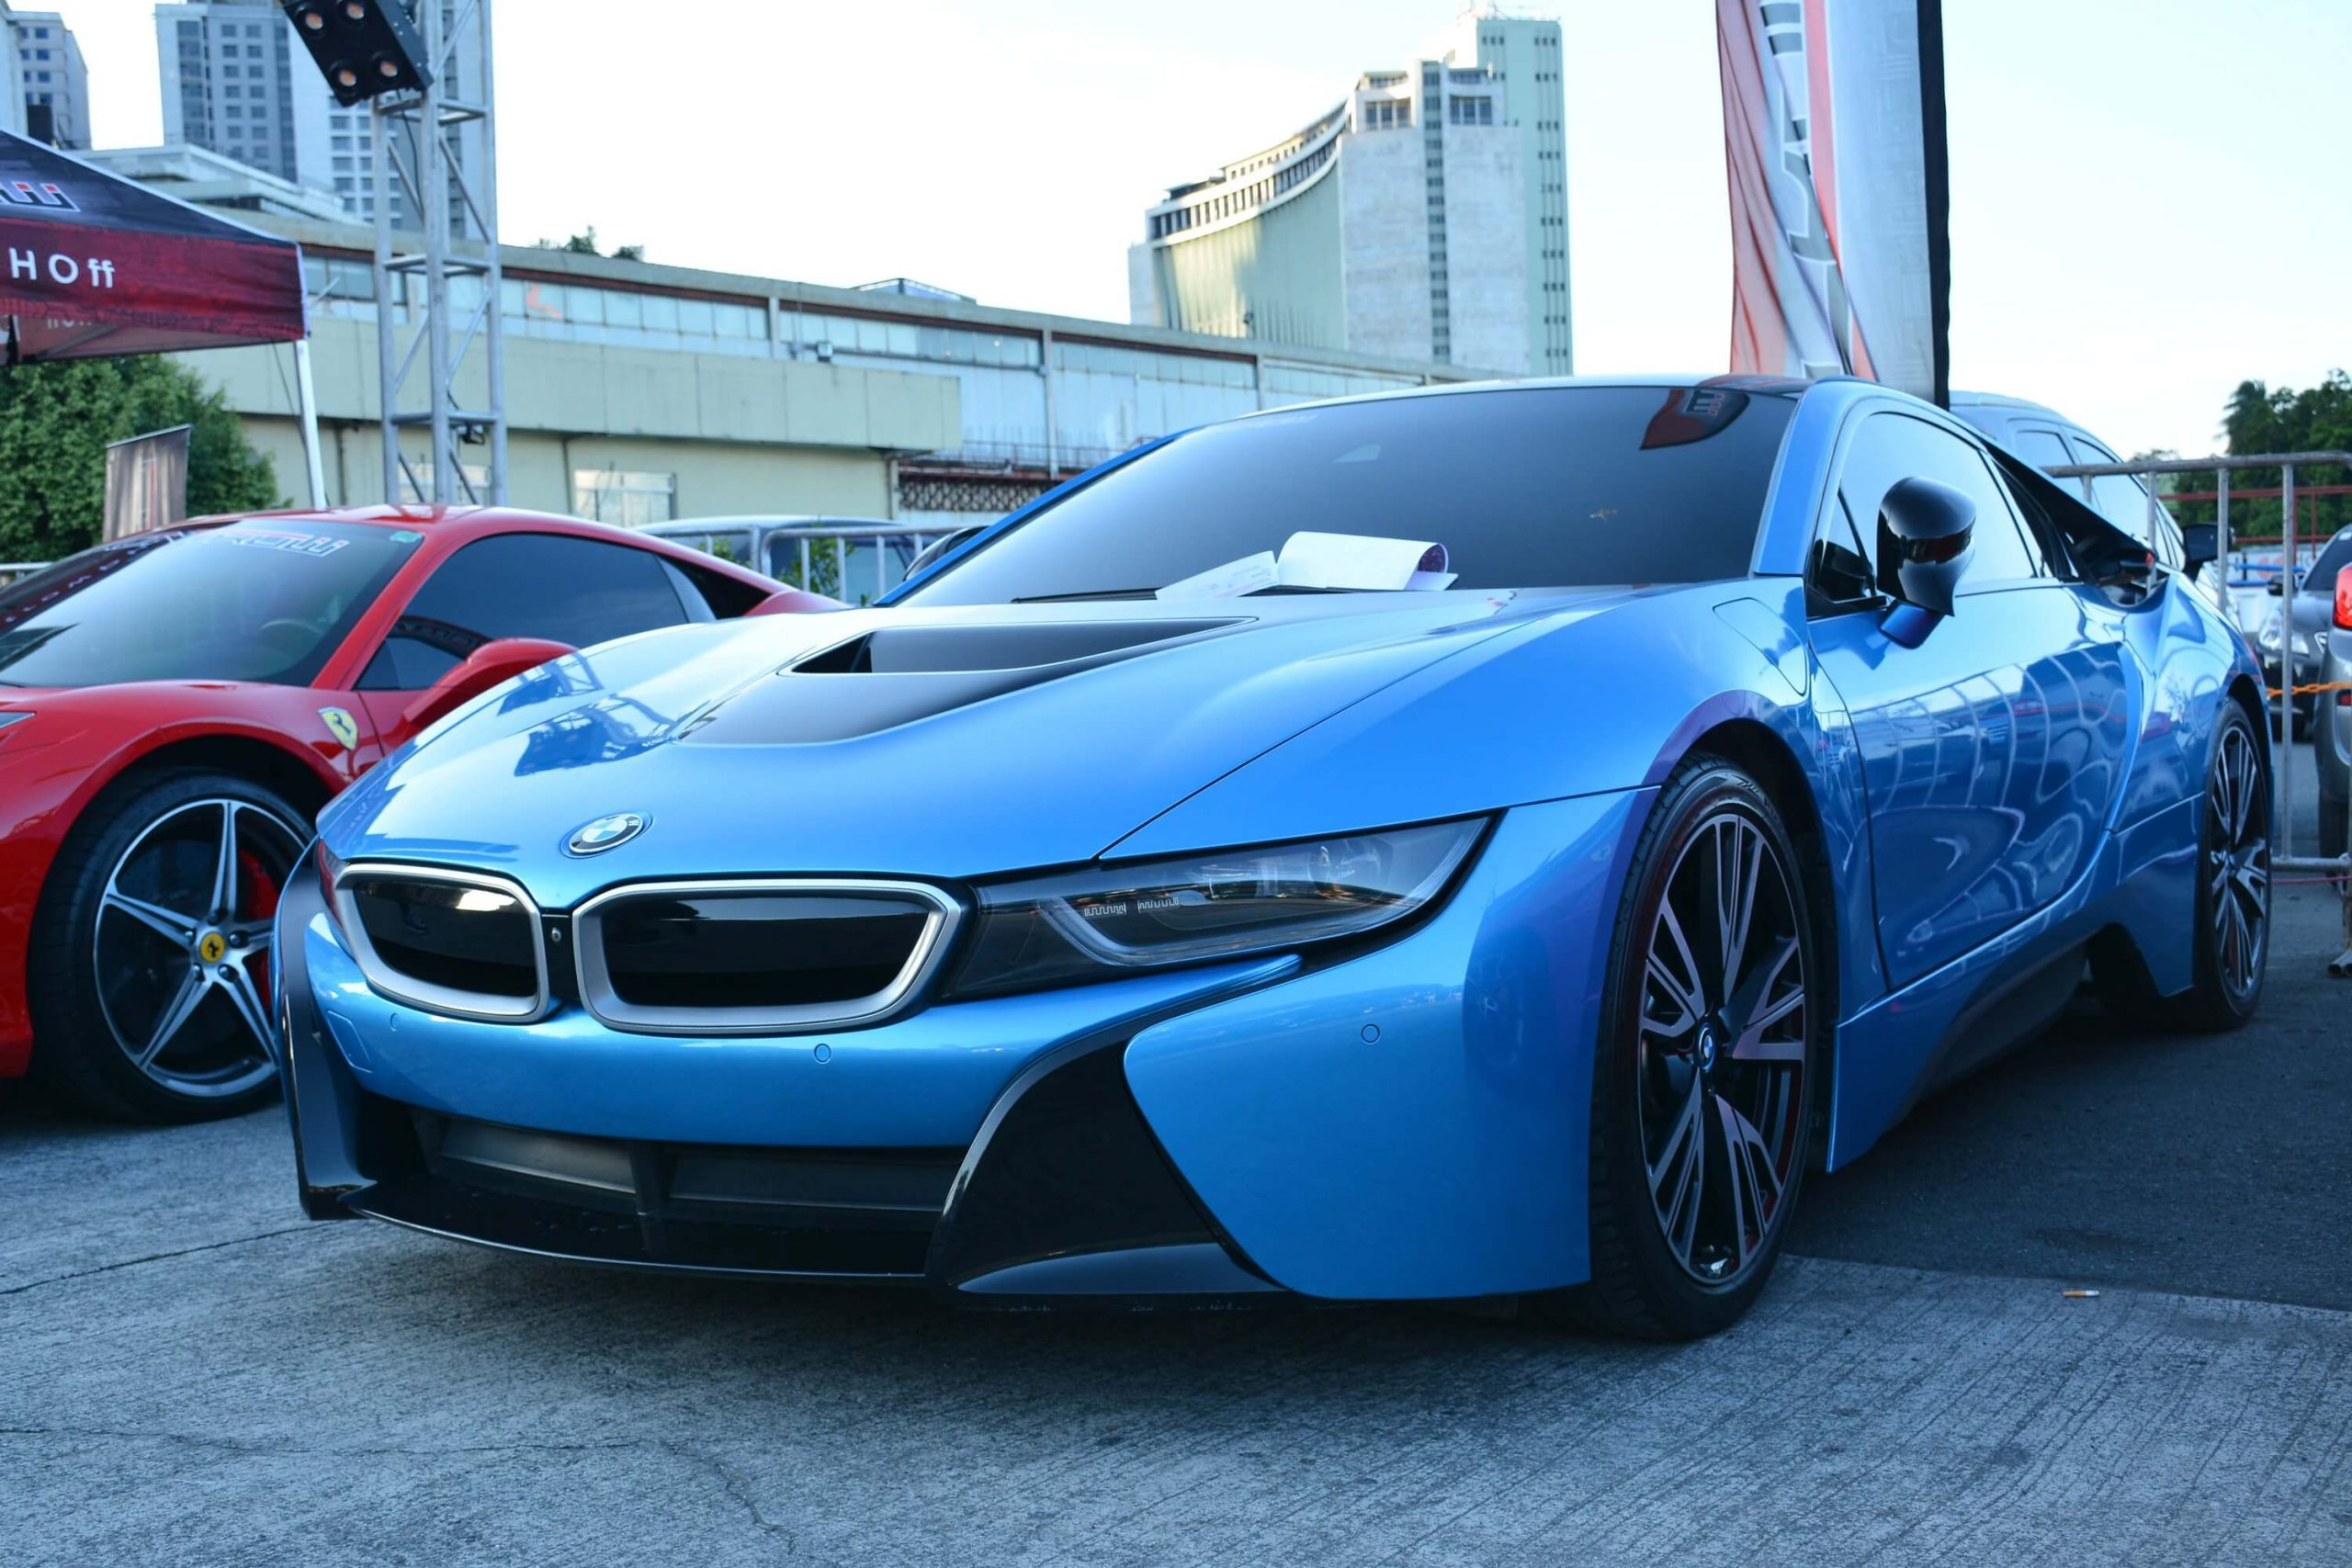 5 Amazing 2020 Automobiles from BMW Group